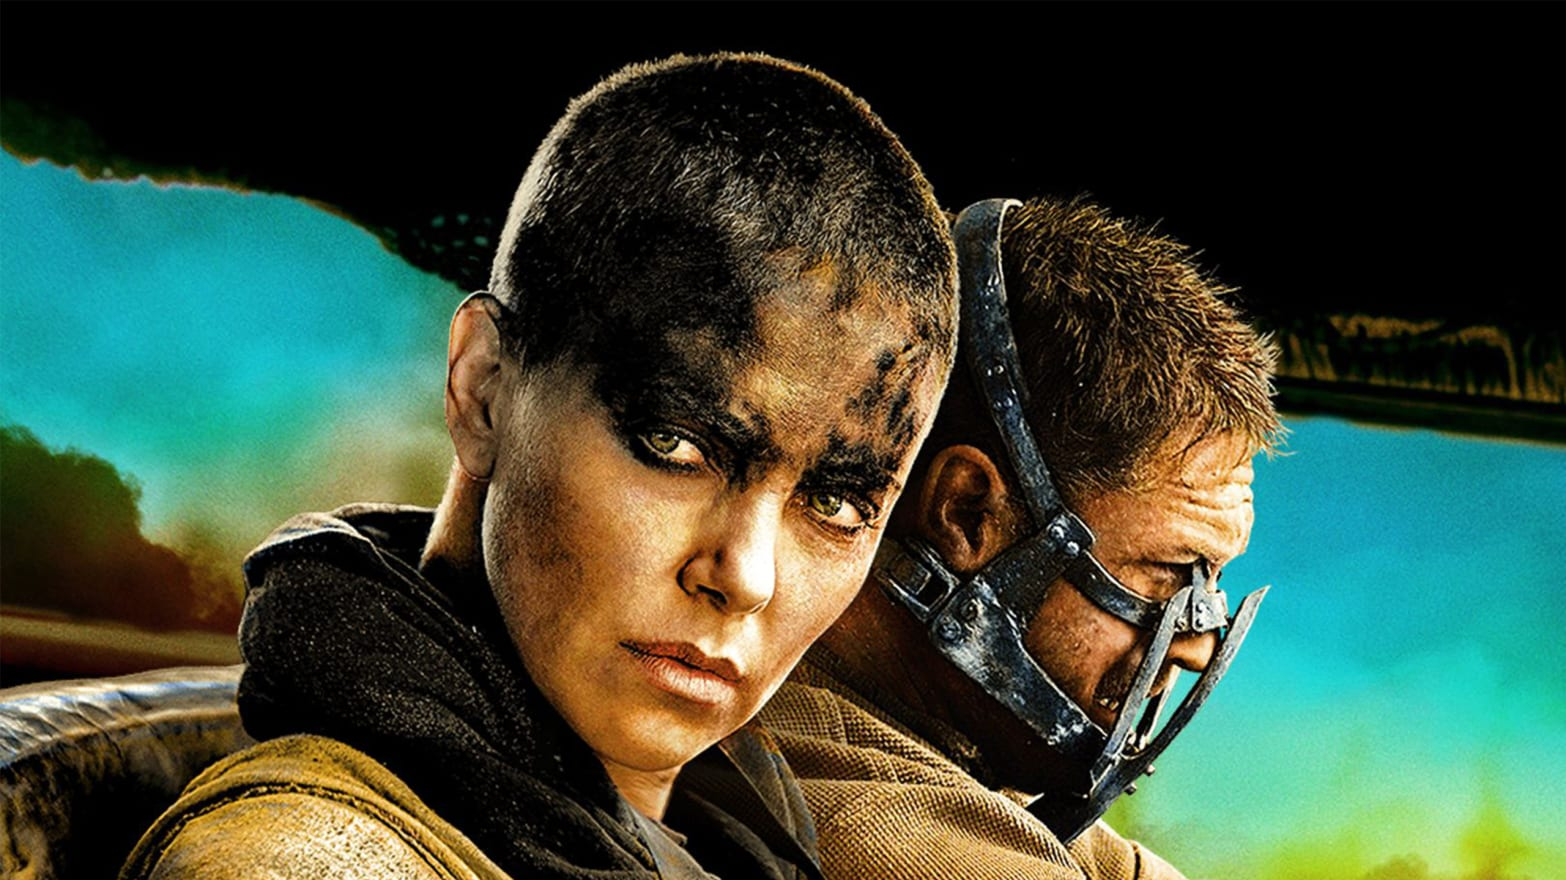 Pin by Robin Binder on Mad max   Warrior woman, Women